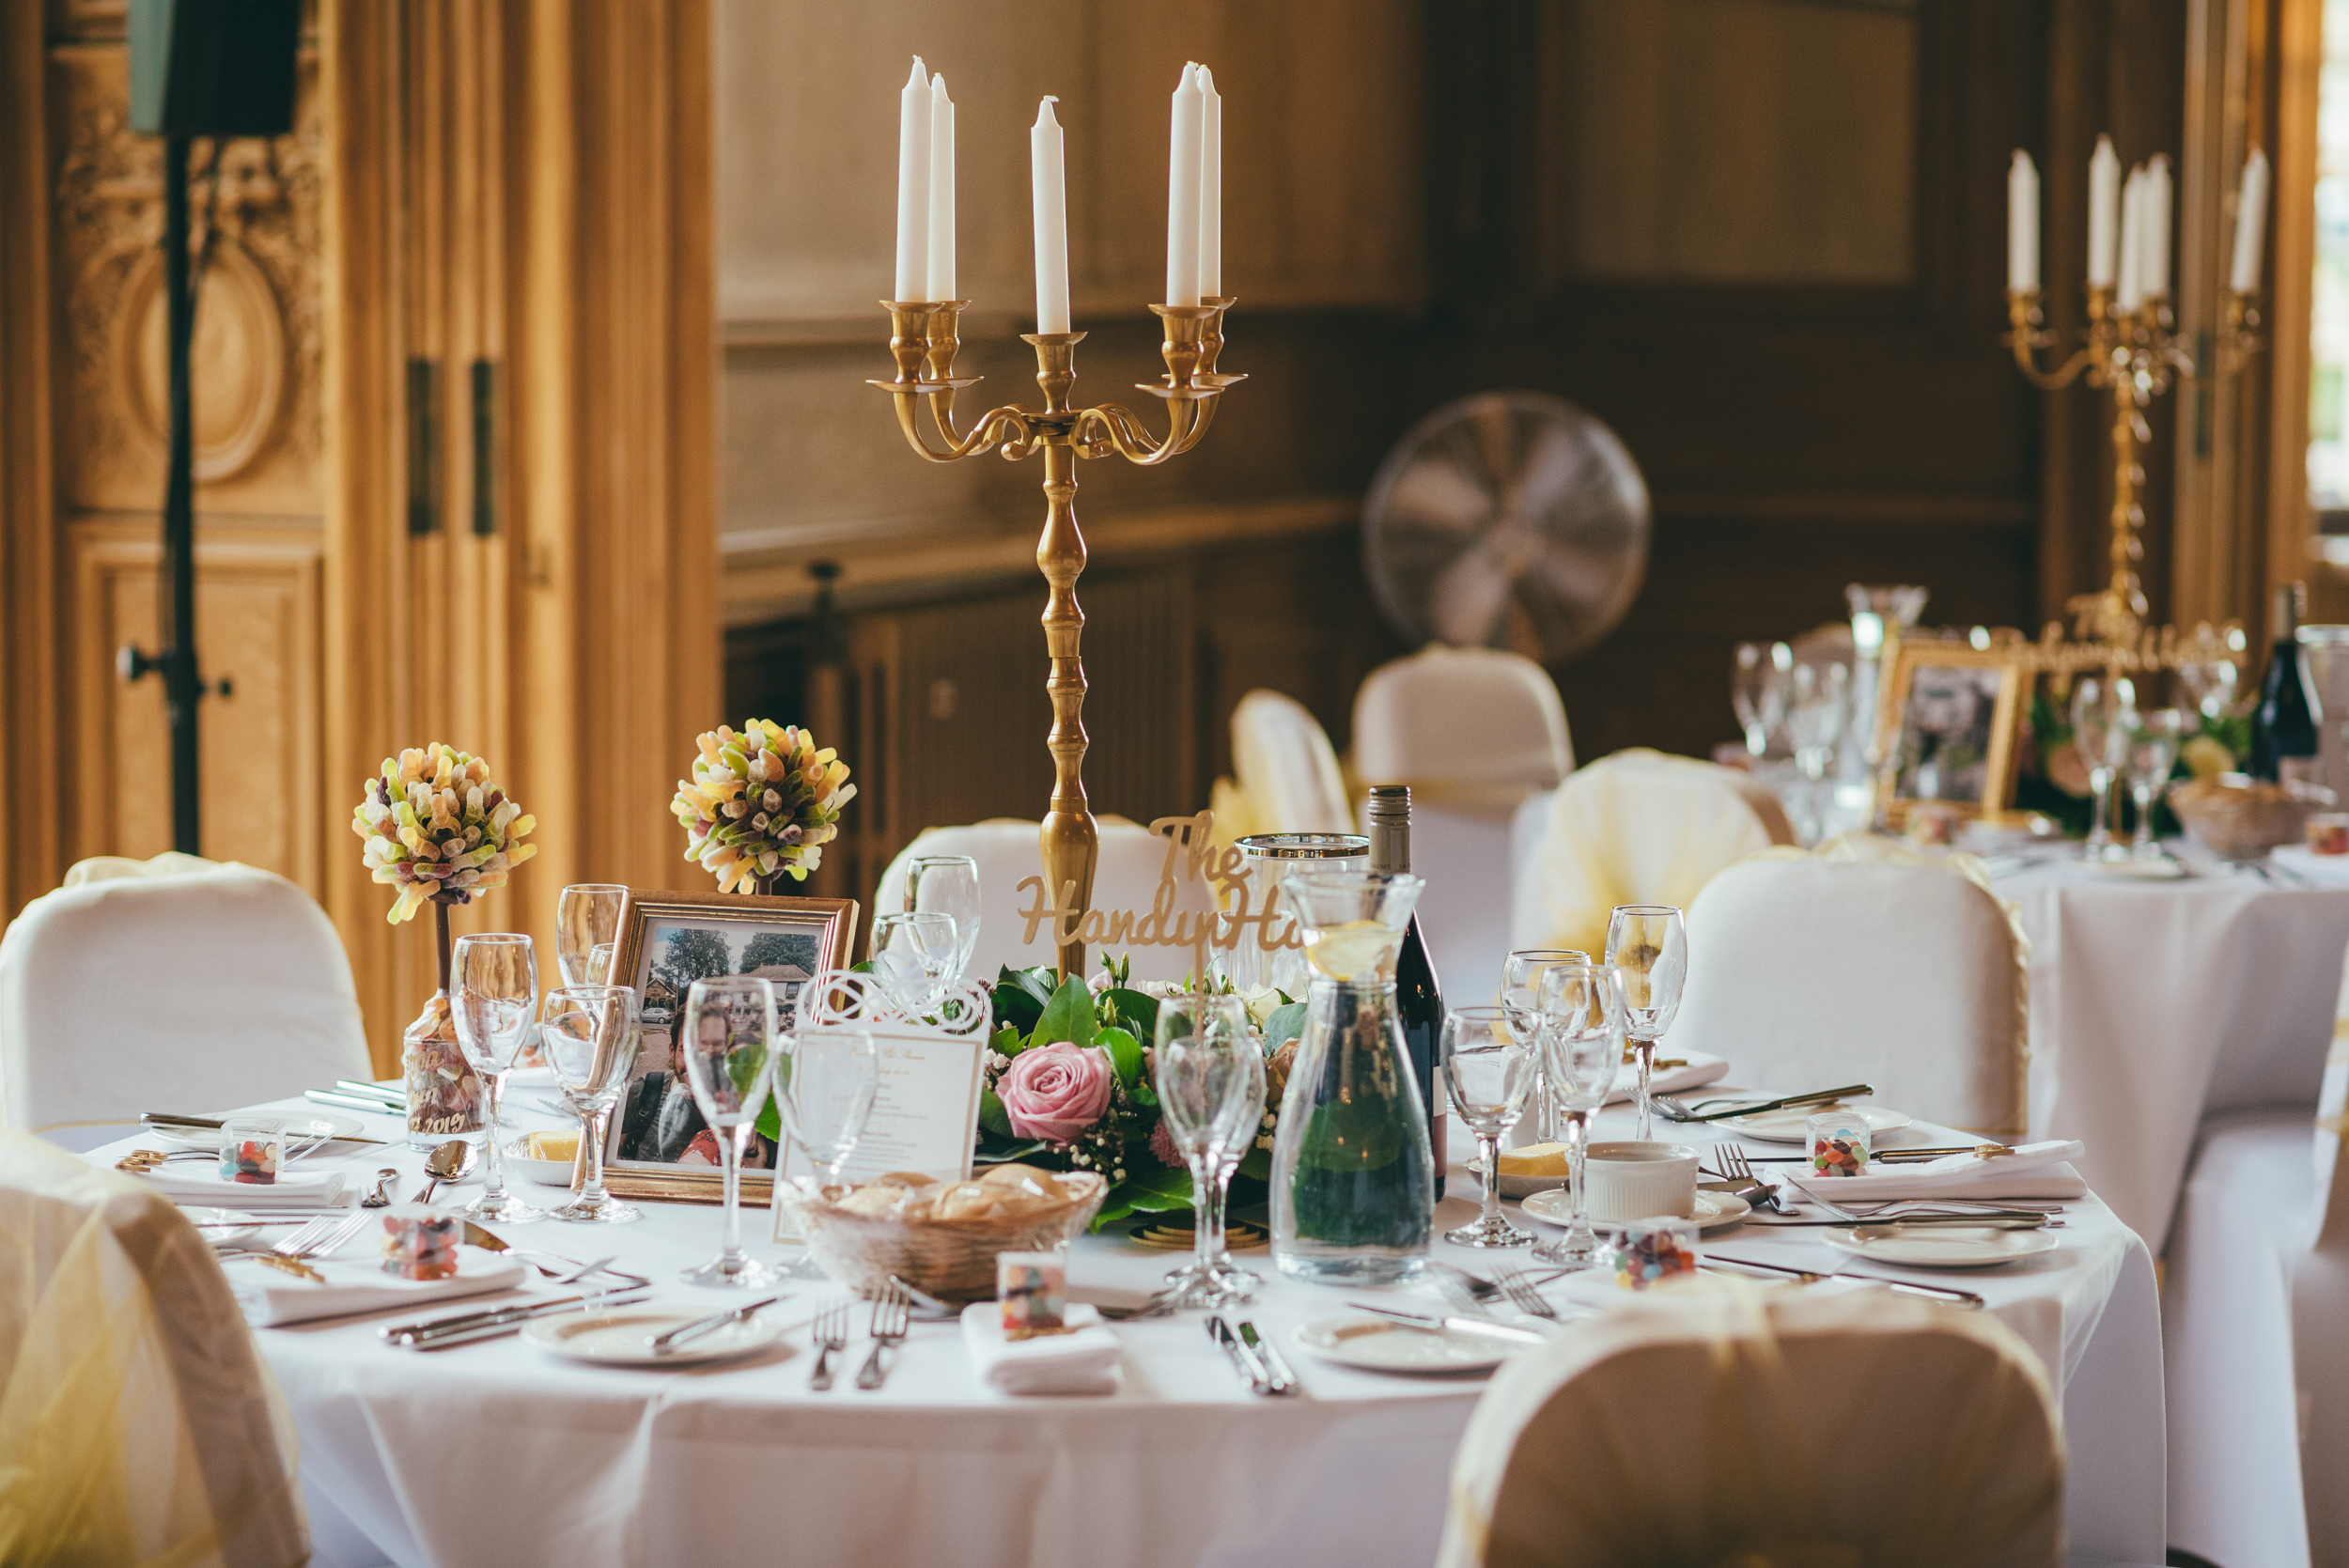 Wedding table details at Harlaxton Manor